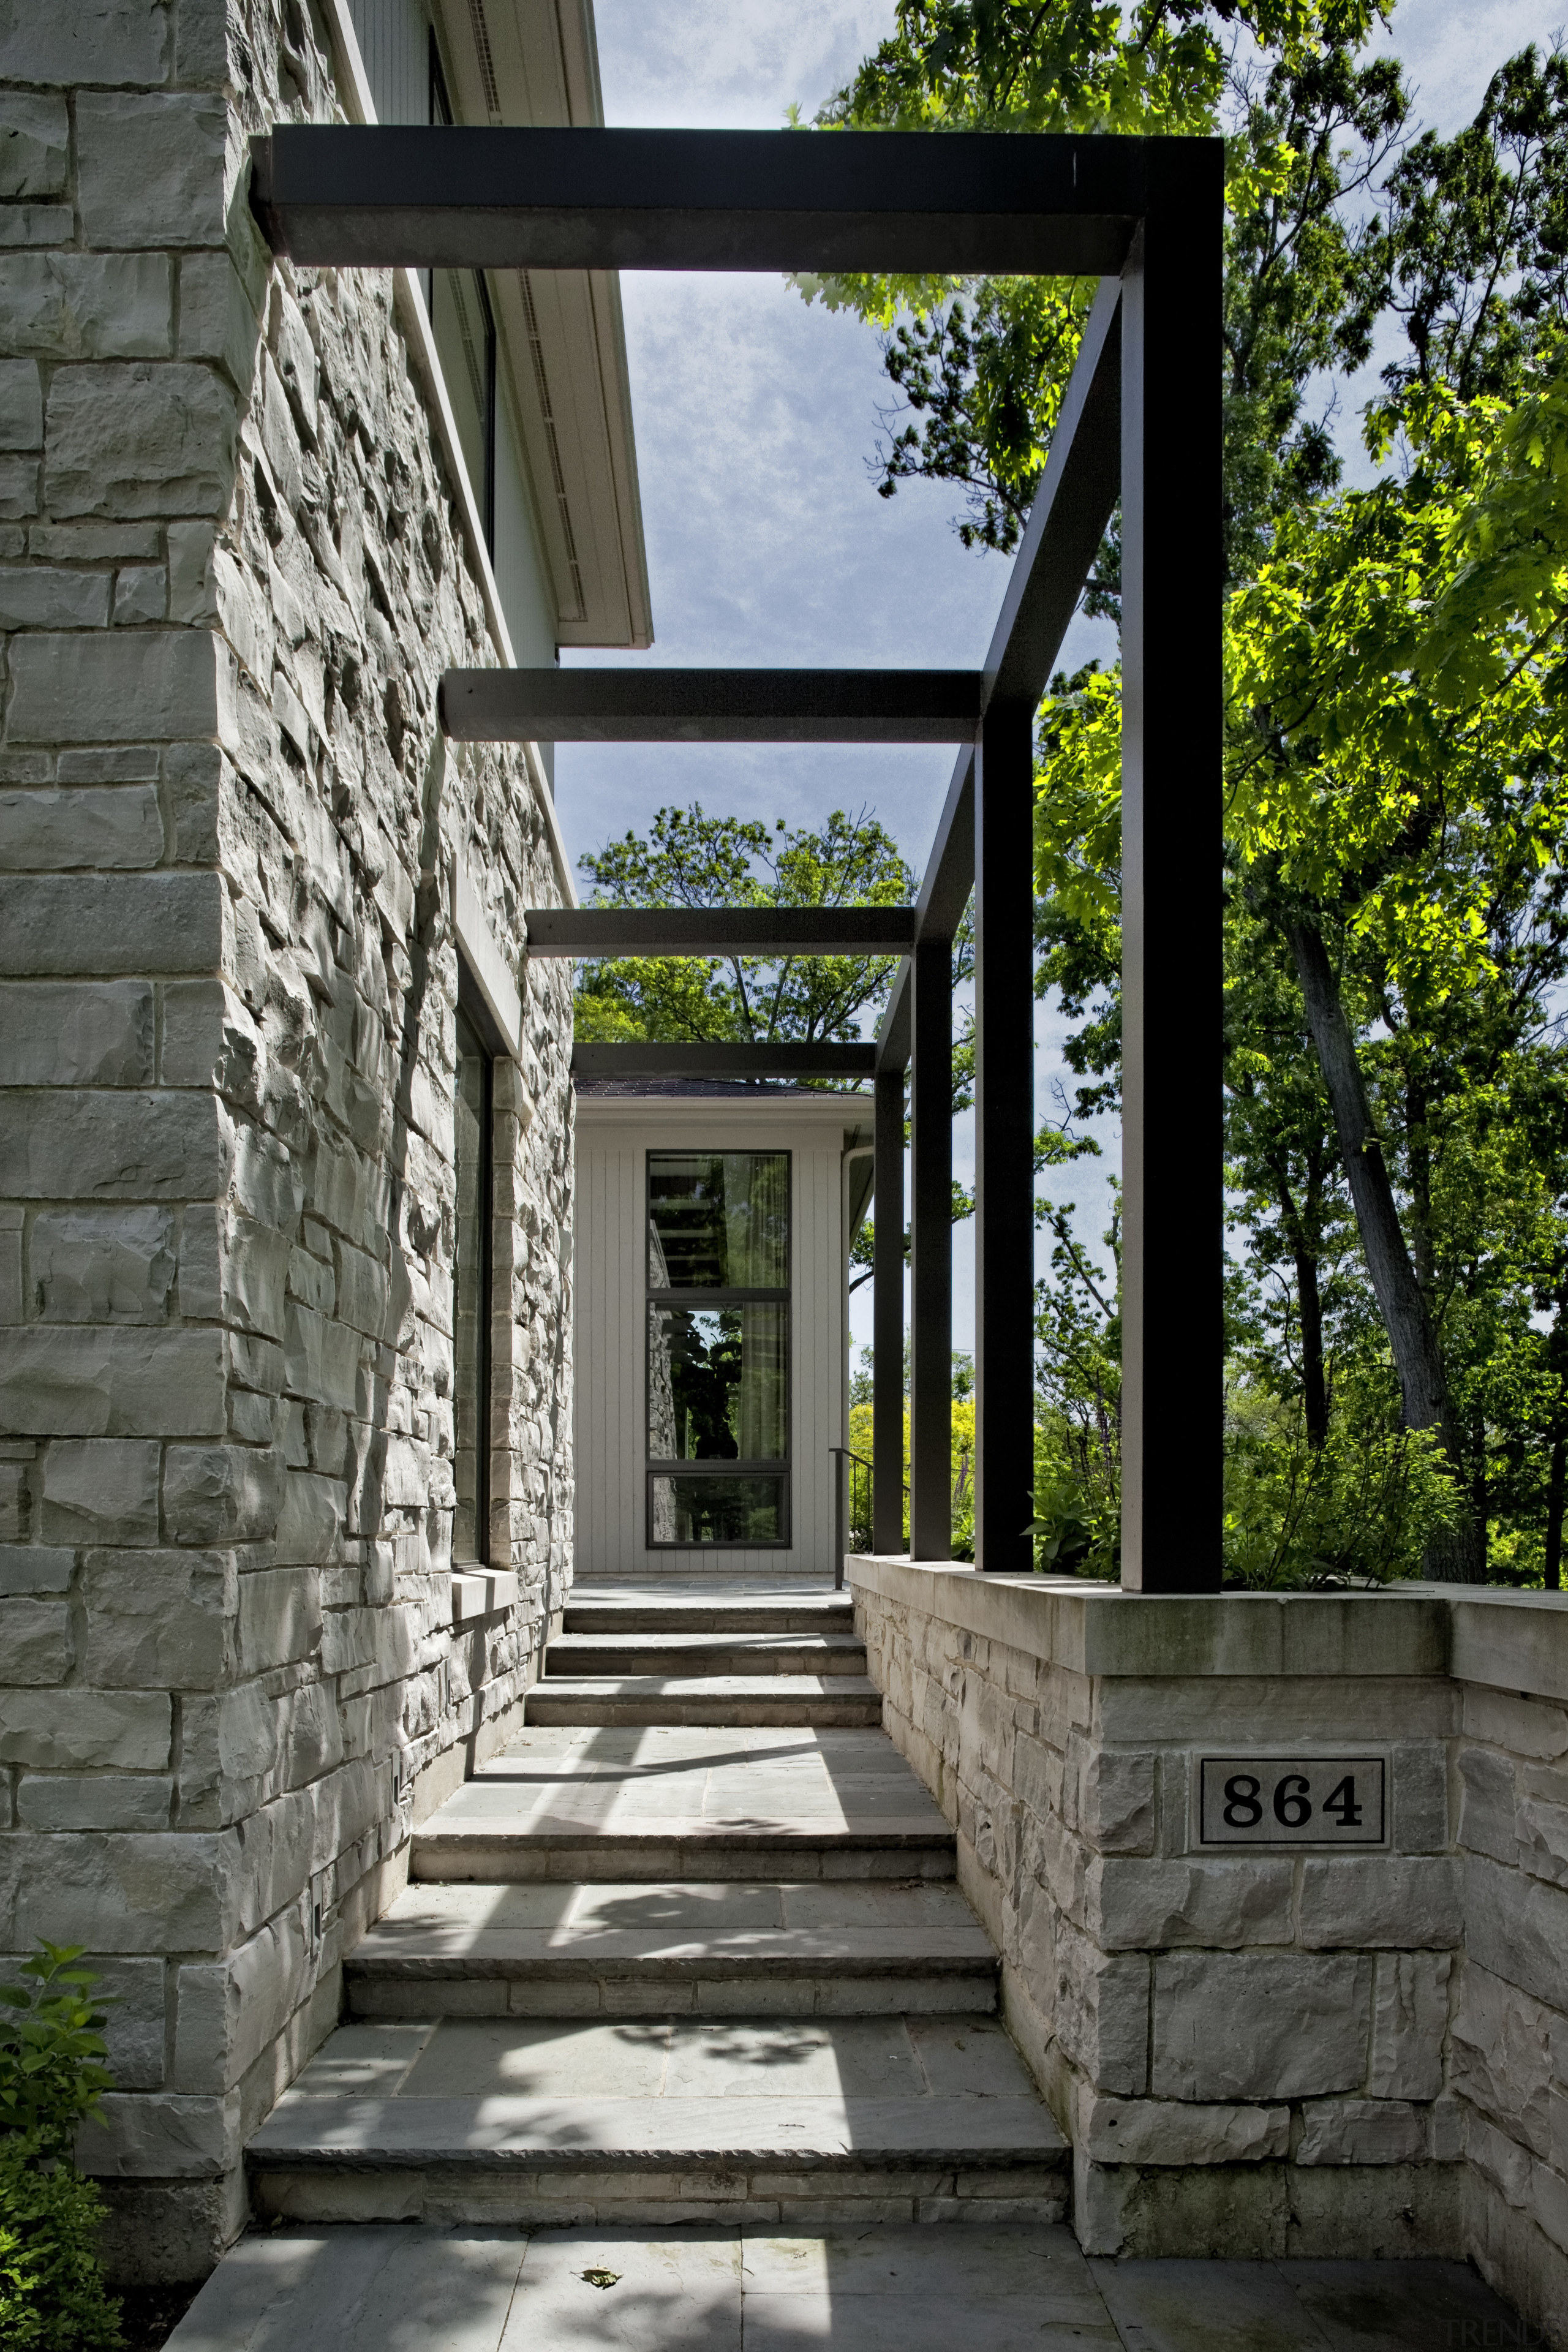 stone outside with paved stairs leading to door architecture, estate, house, outdoor structure, residential area, structure, walkway, black, gray